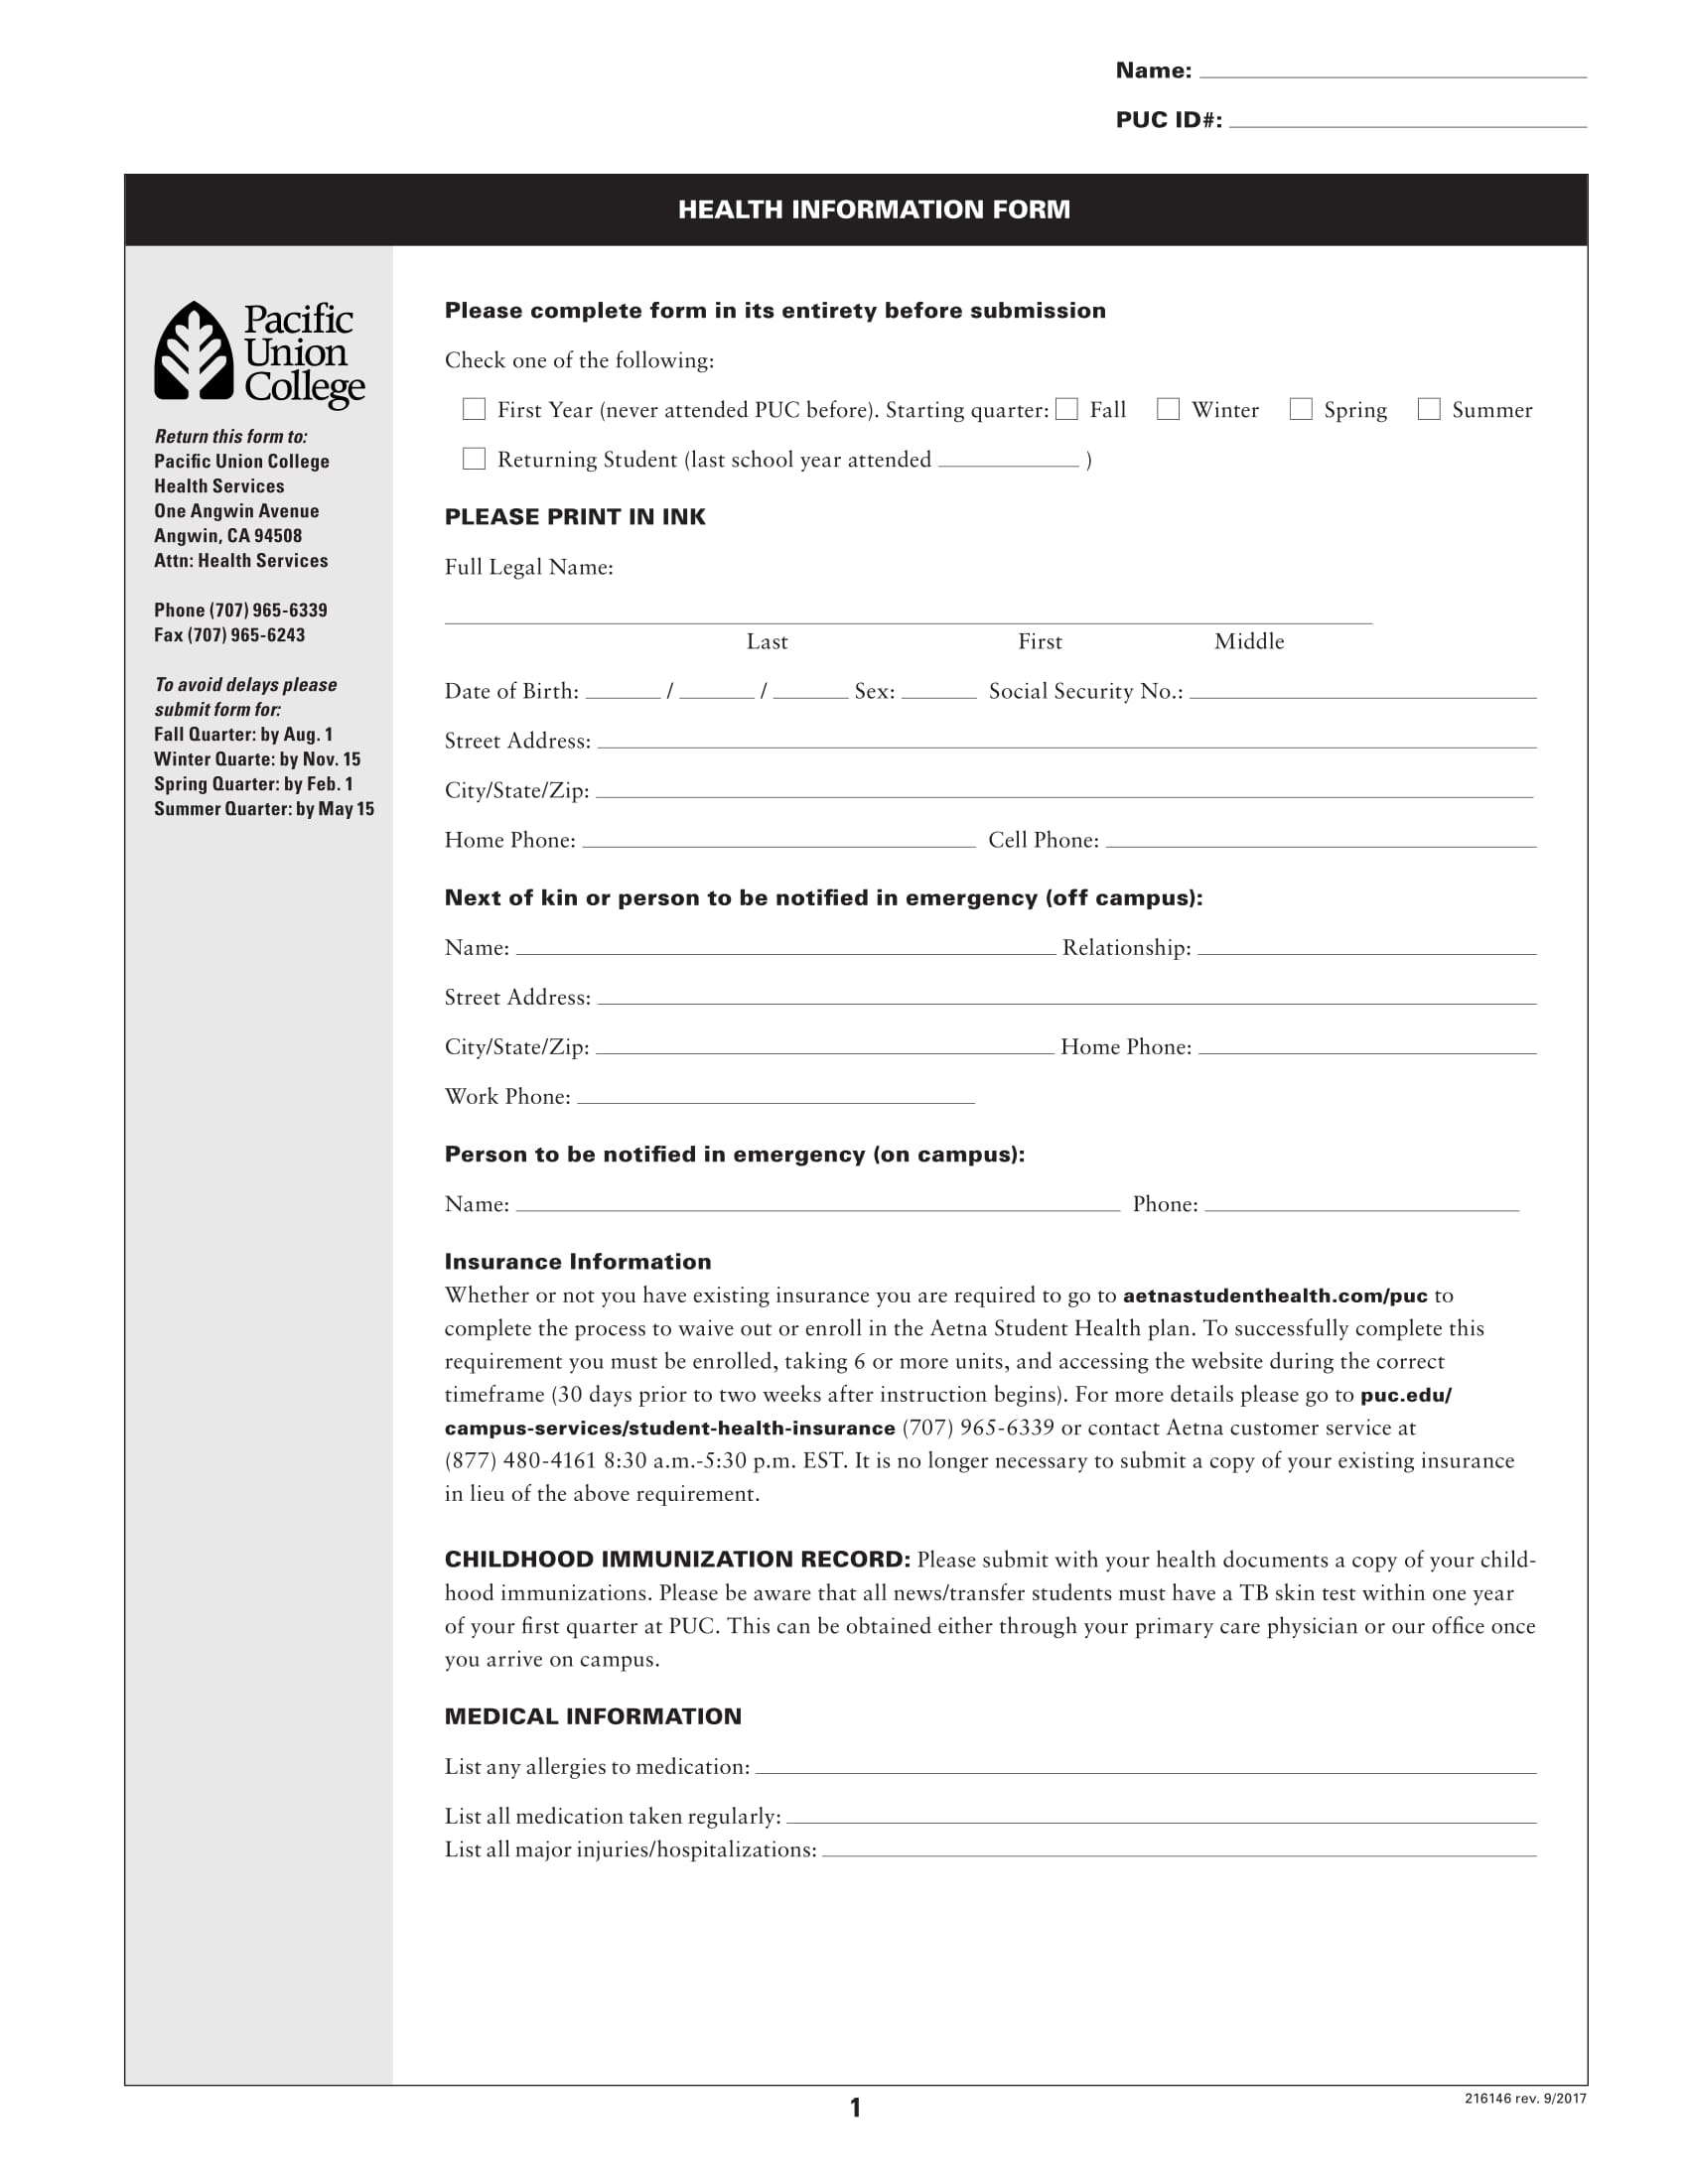 standard health information form for students 1